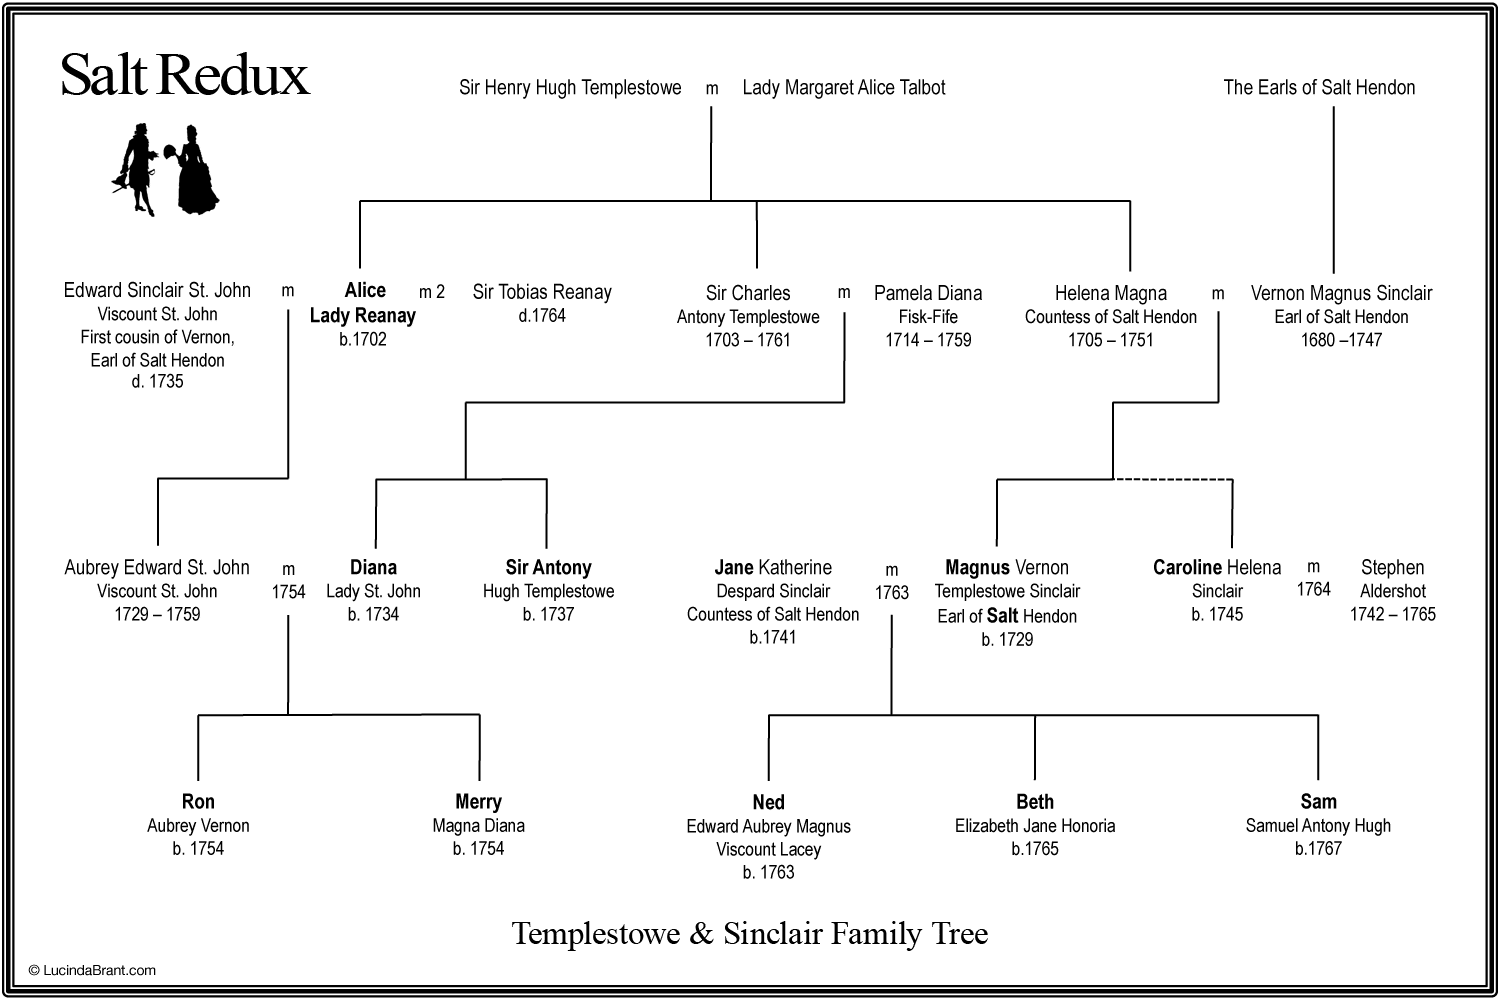 salt-redux-family-tree.png